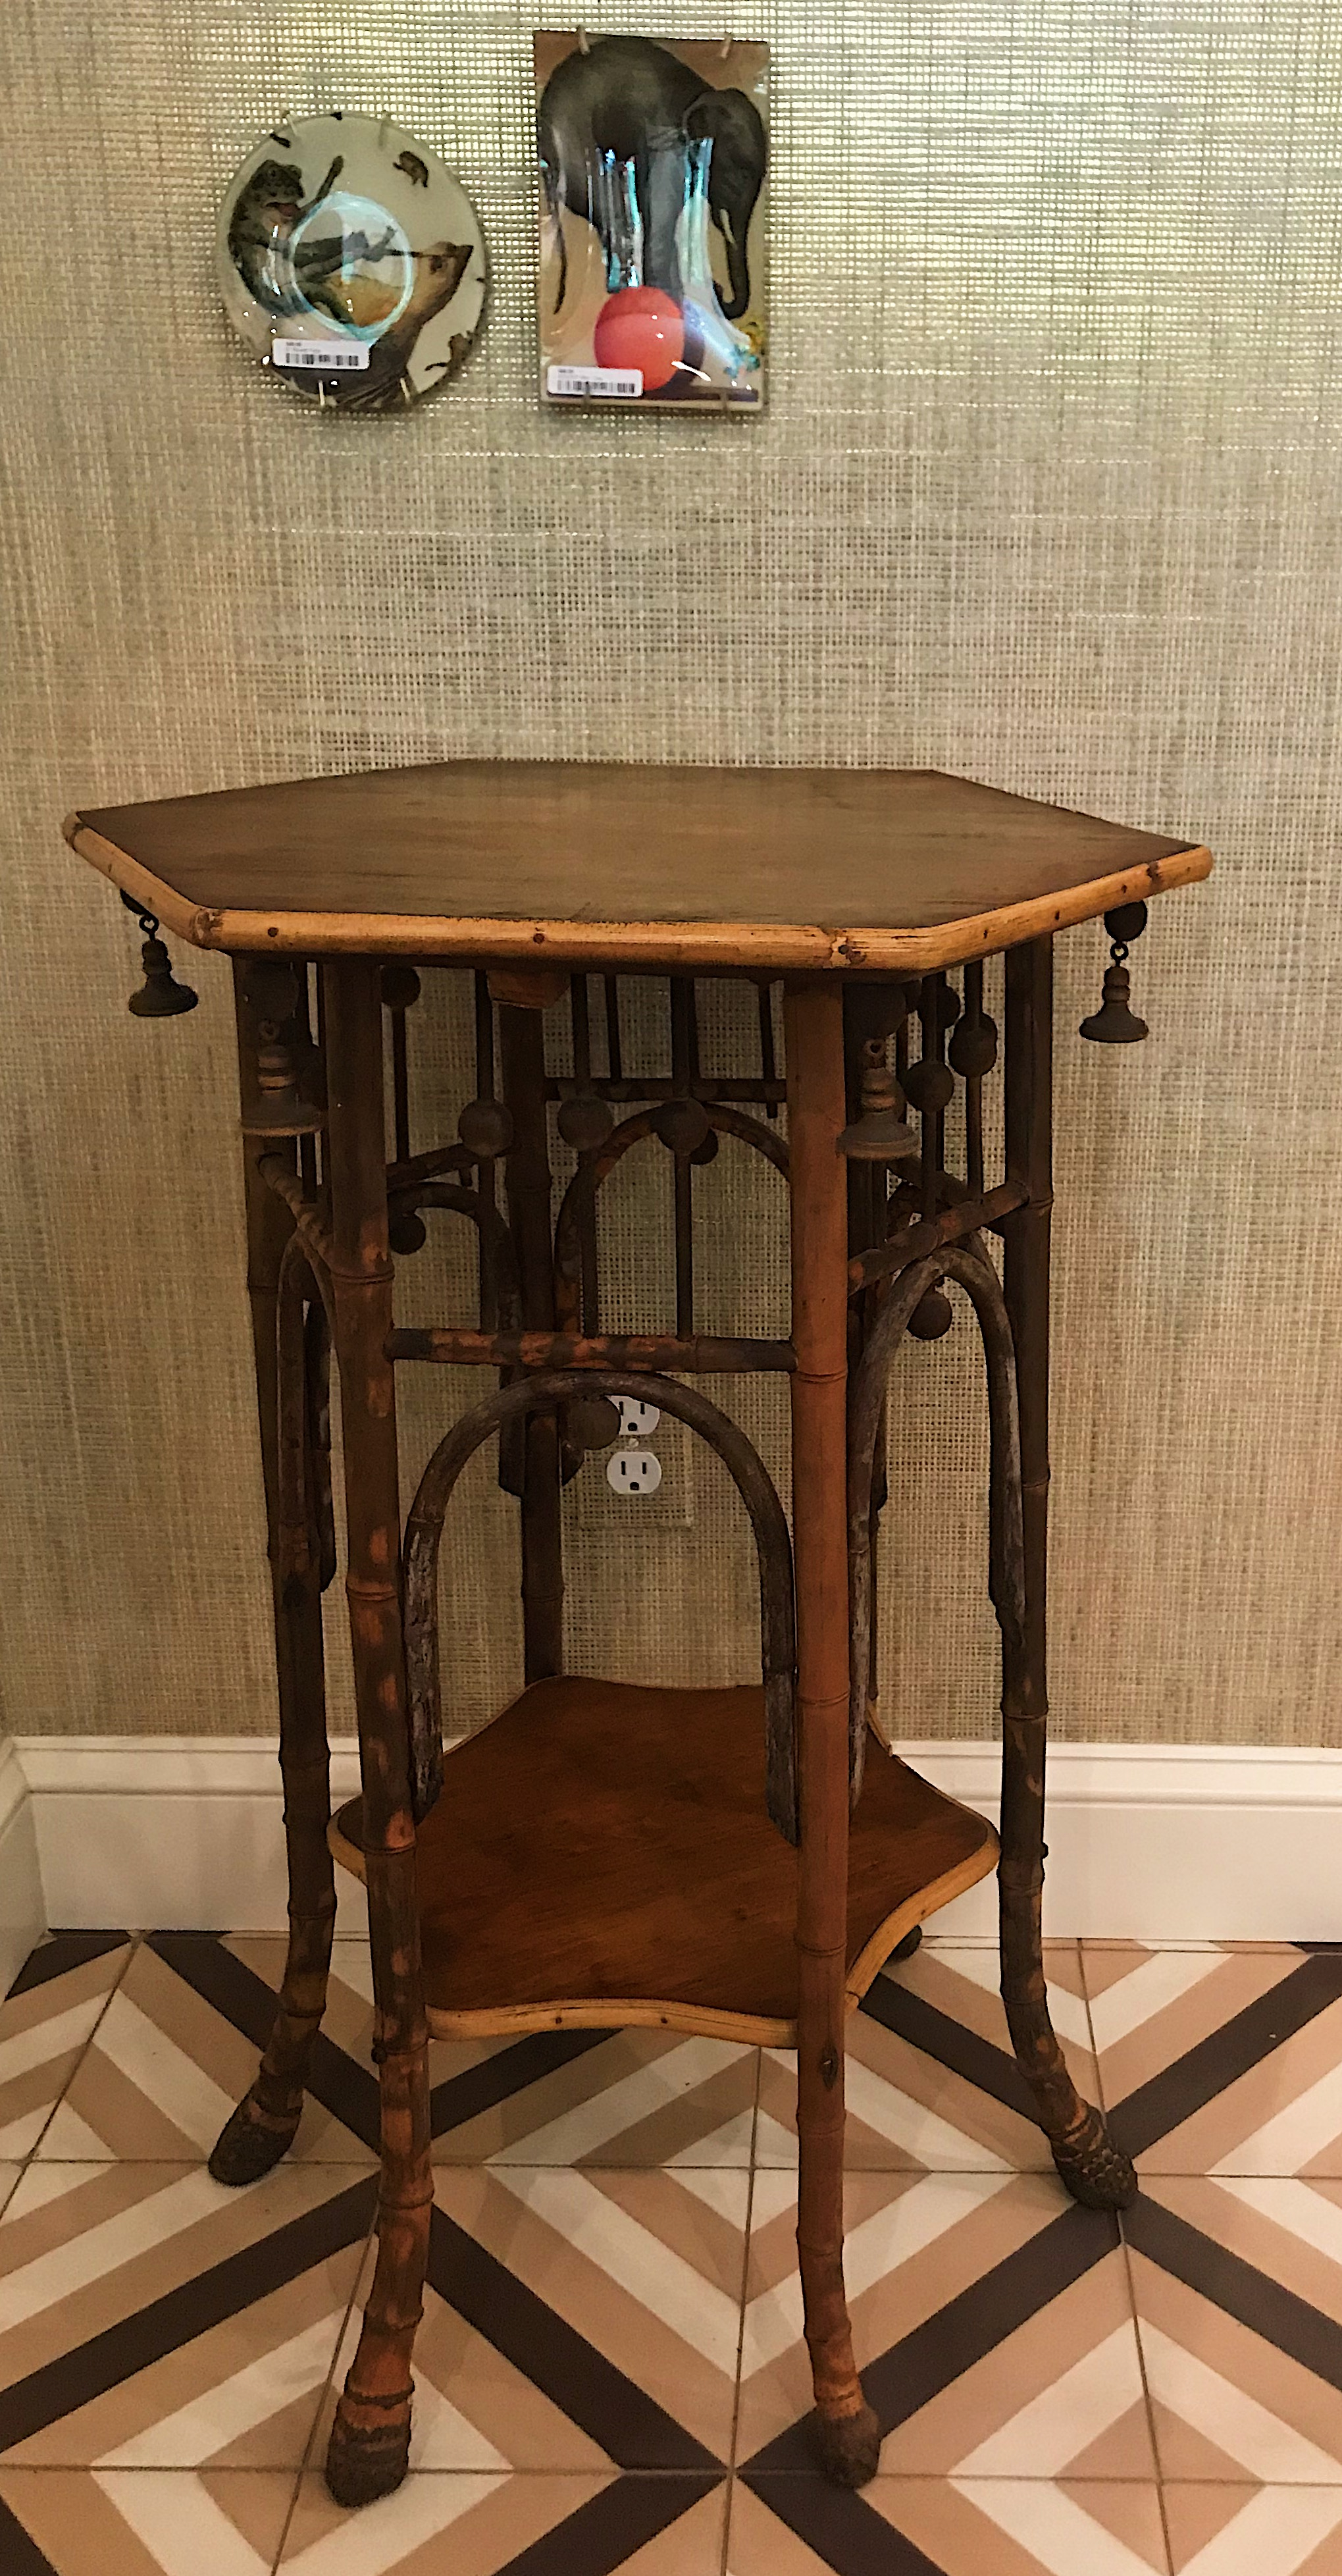 Antique bamboo side table I managed to snag last week!